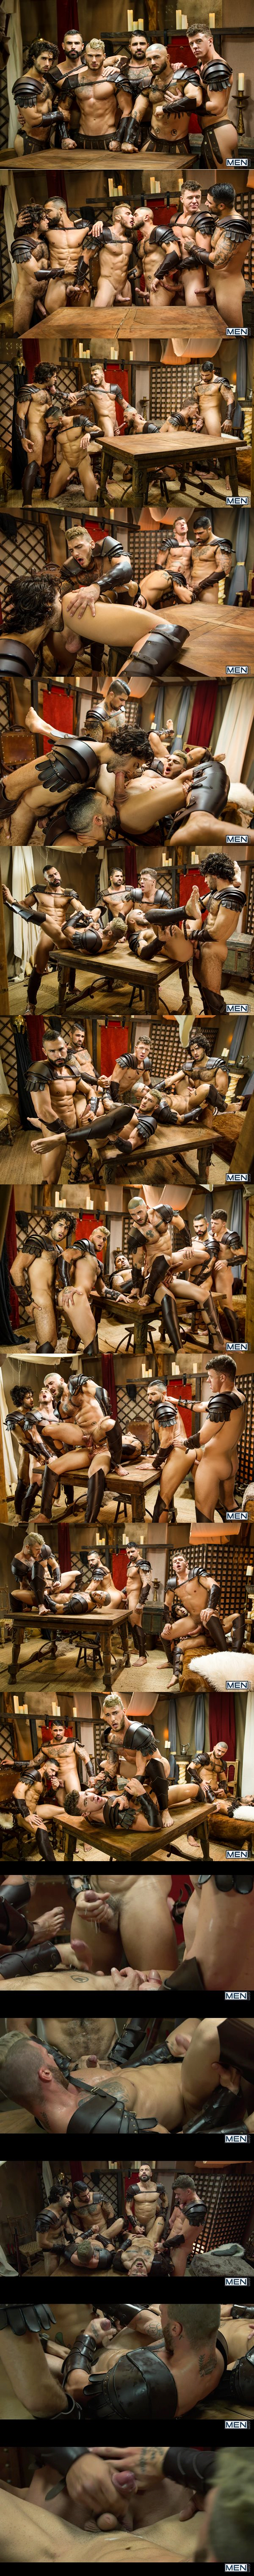 Diego Sans and Ryan Bones fuck William Seed, D.O., Francois Sagat and JJ Knight in Sacred Band Of Thebes Part 4 at Drillmyhole 02